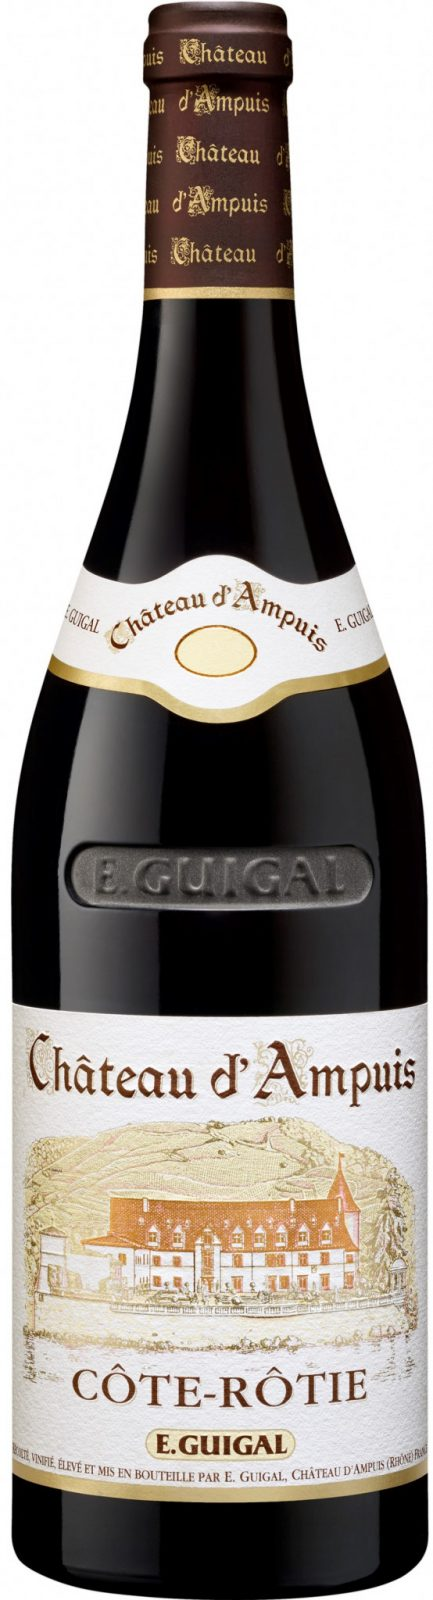 Guigal Cote-Rotie Chateau d Ampuis Wineaffair